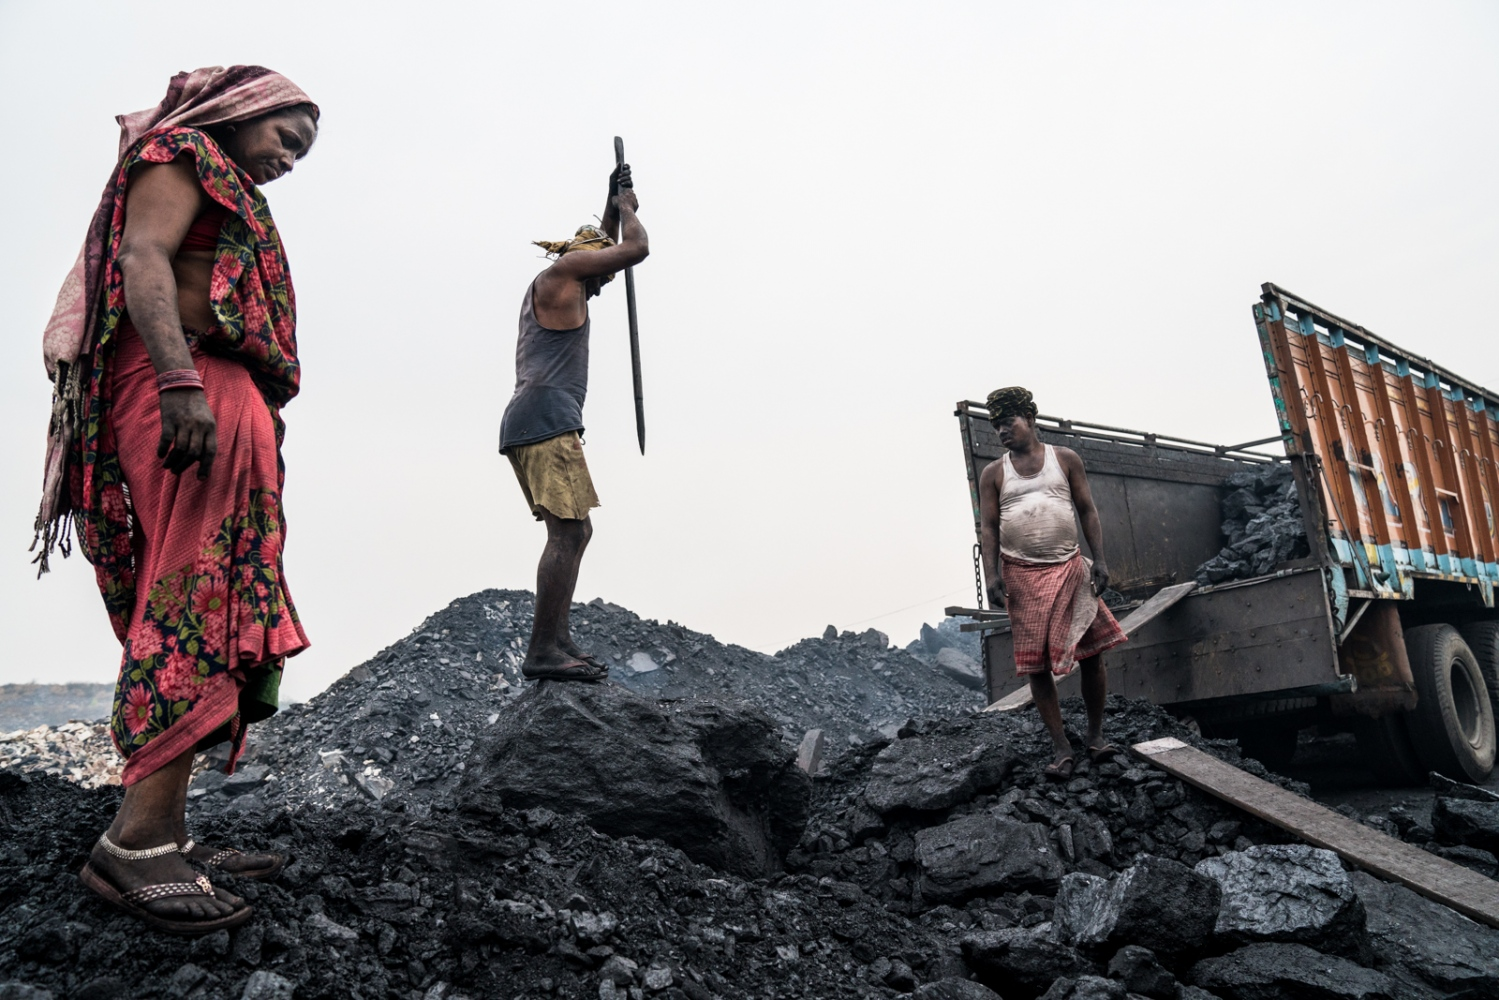 Coal mine workers break up large pieces of coal, which is transported via train to power coal-fired power plants that bring energy to major cities and industries in India.